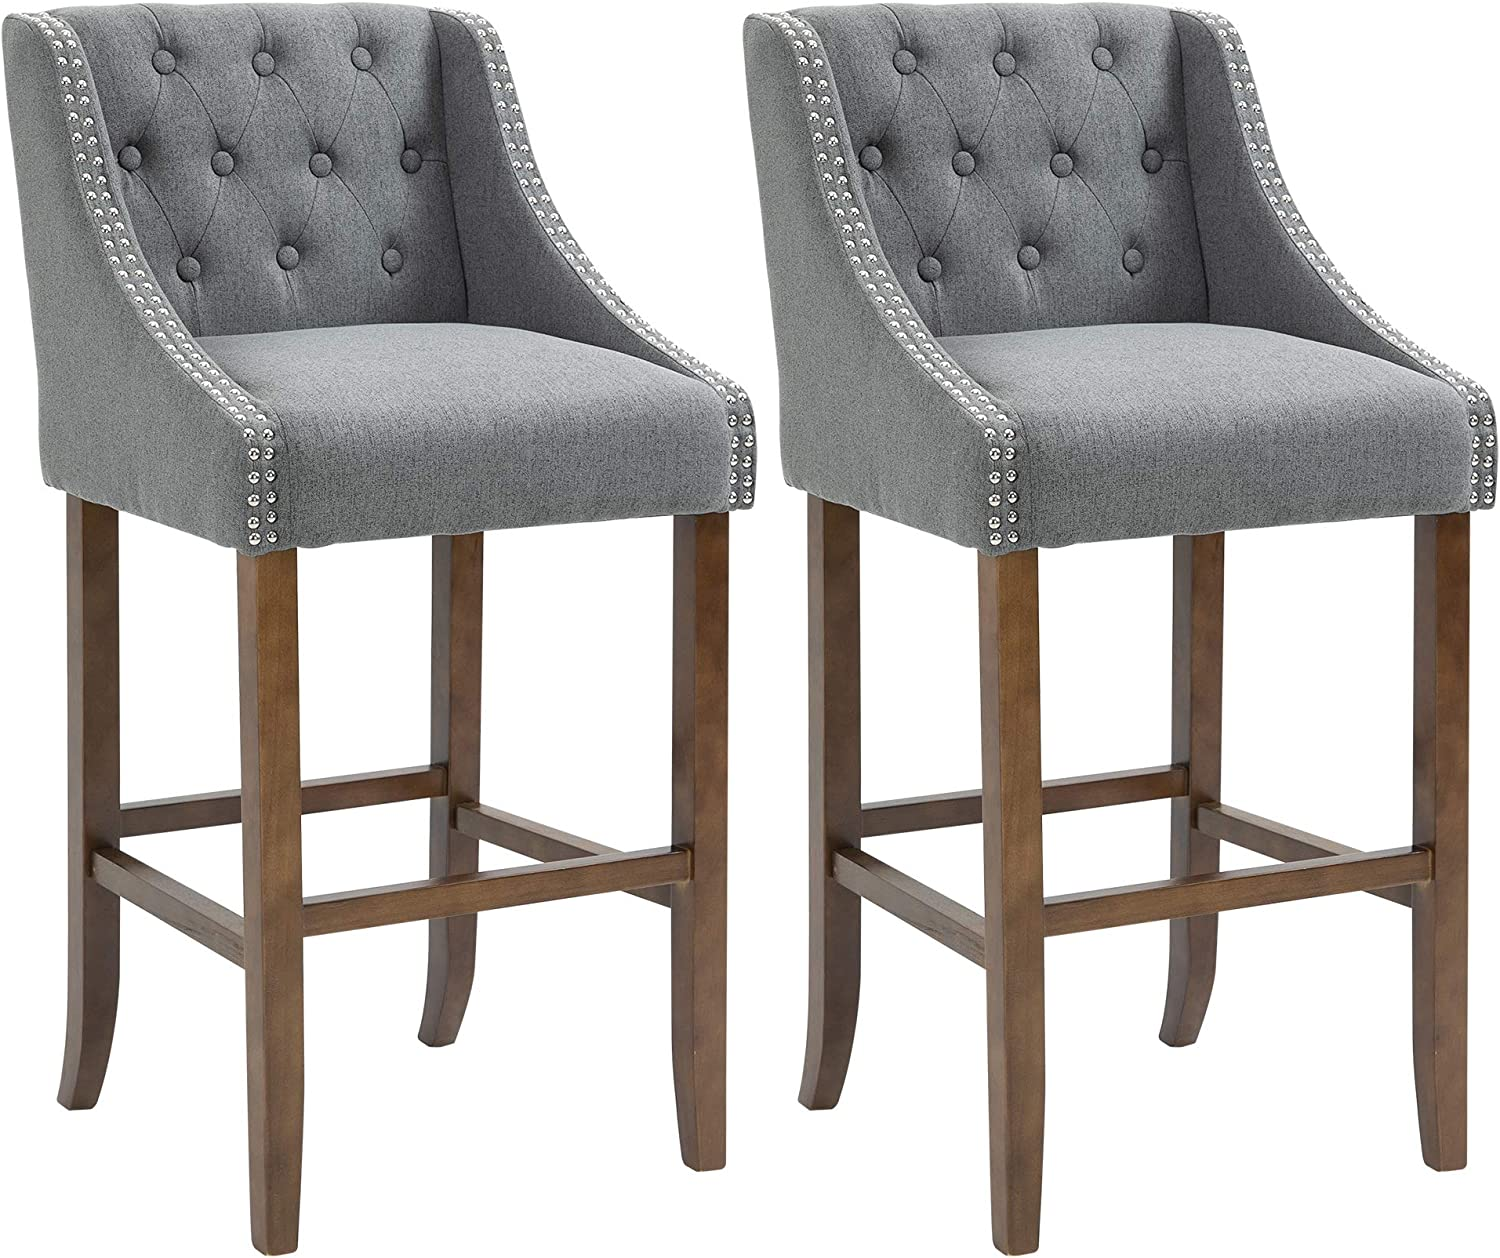 HOMCOM Indefinitely Modern Mid Back Bar Height Limited Special Price Chair for Kitche Dining Stools